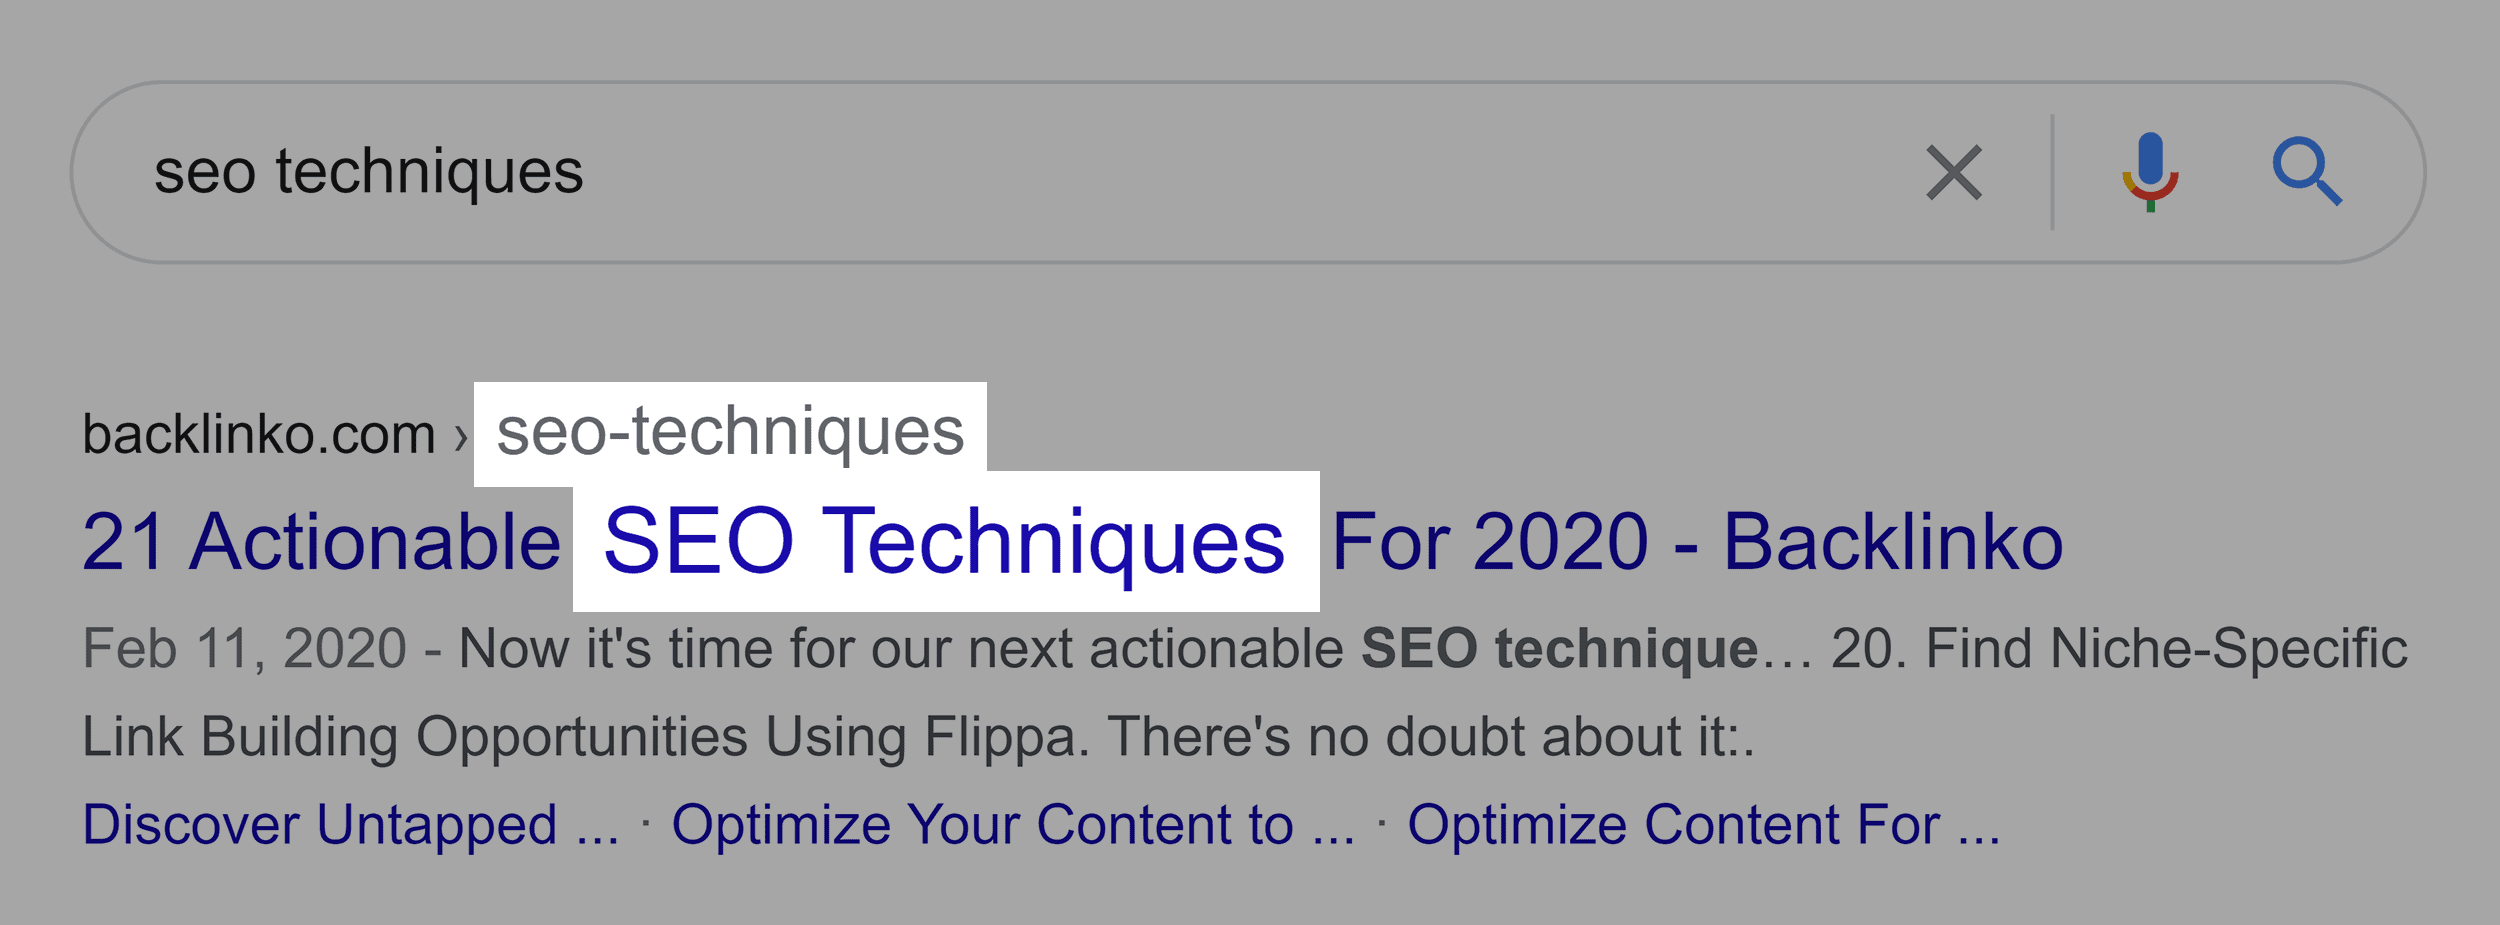 SEO Techniques In Title And URL